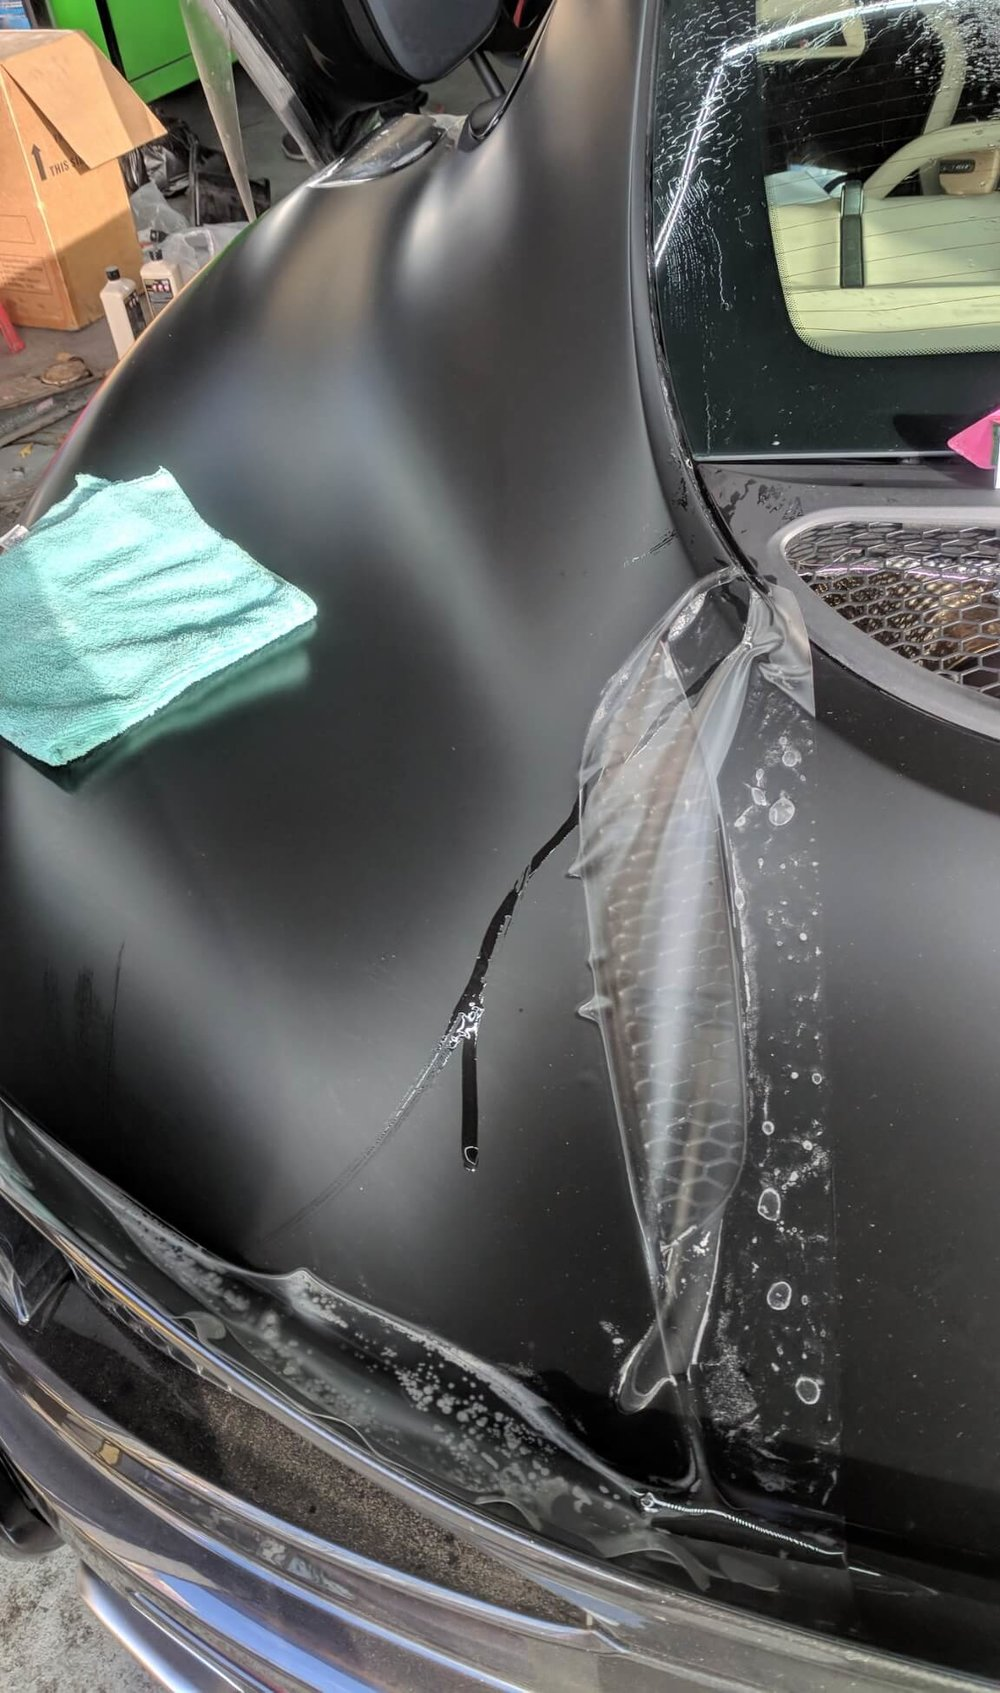 McLaren 570S rear quarter panel getting   Xpel Stealth paint protection film   / clear bra